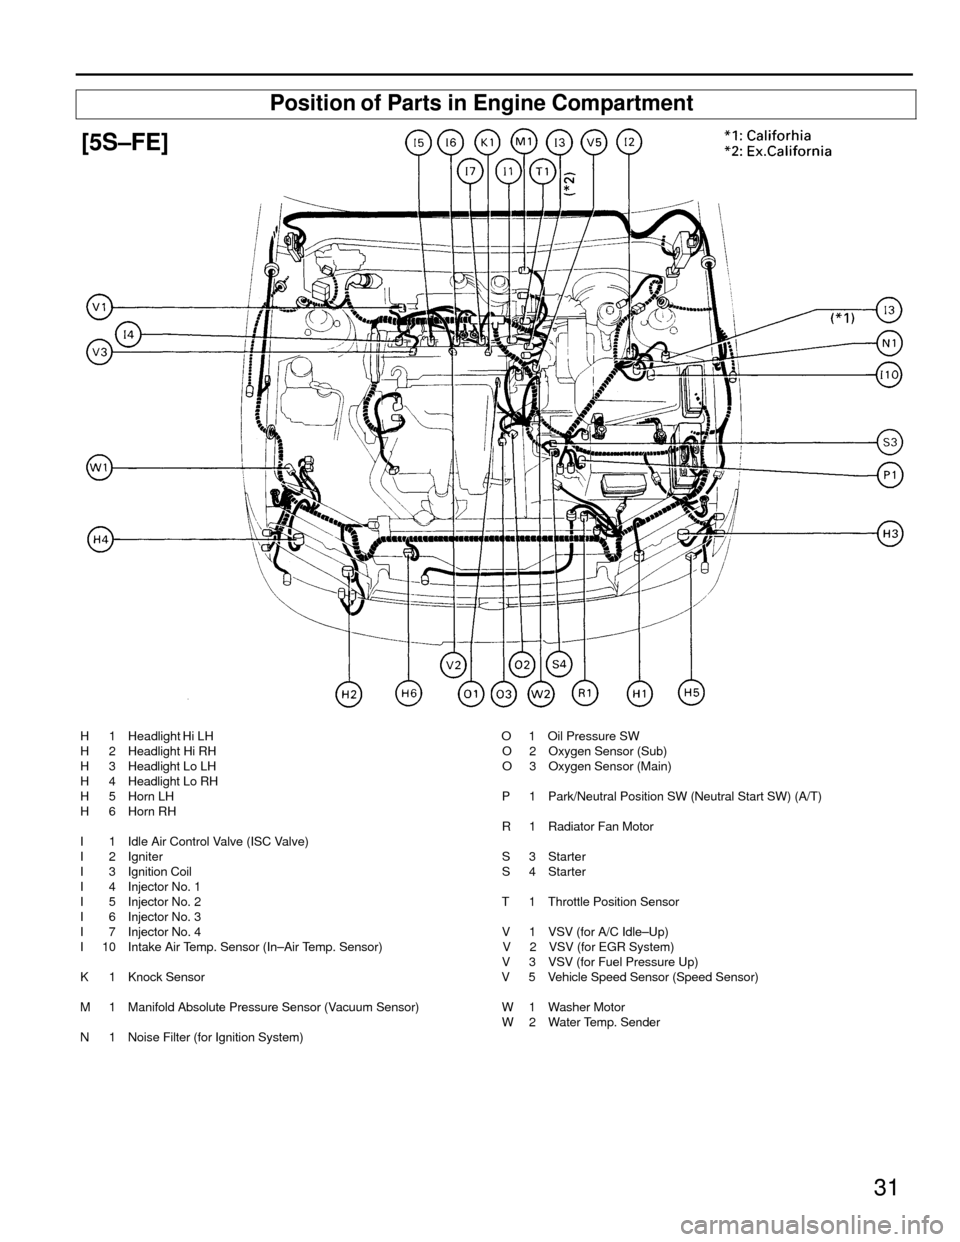 Hummer H3 Headlight Wiring Diagram : 34 Wiring Diagram